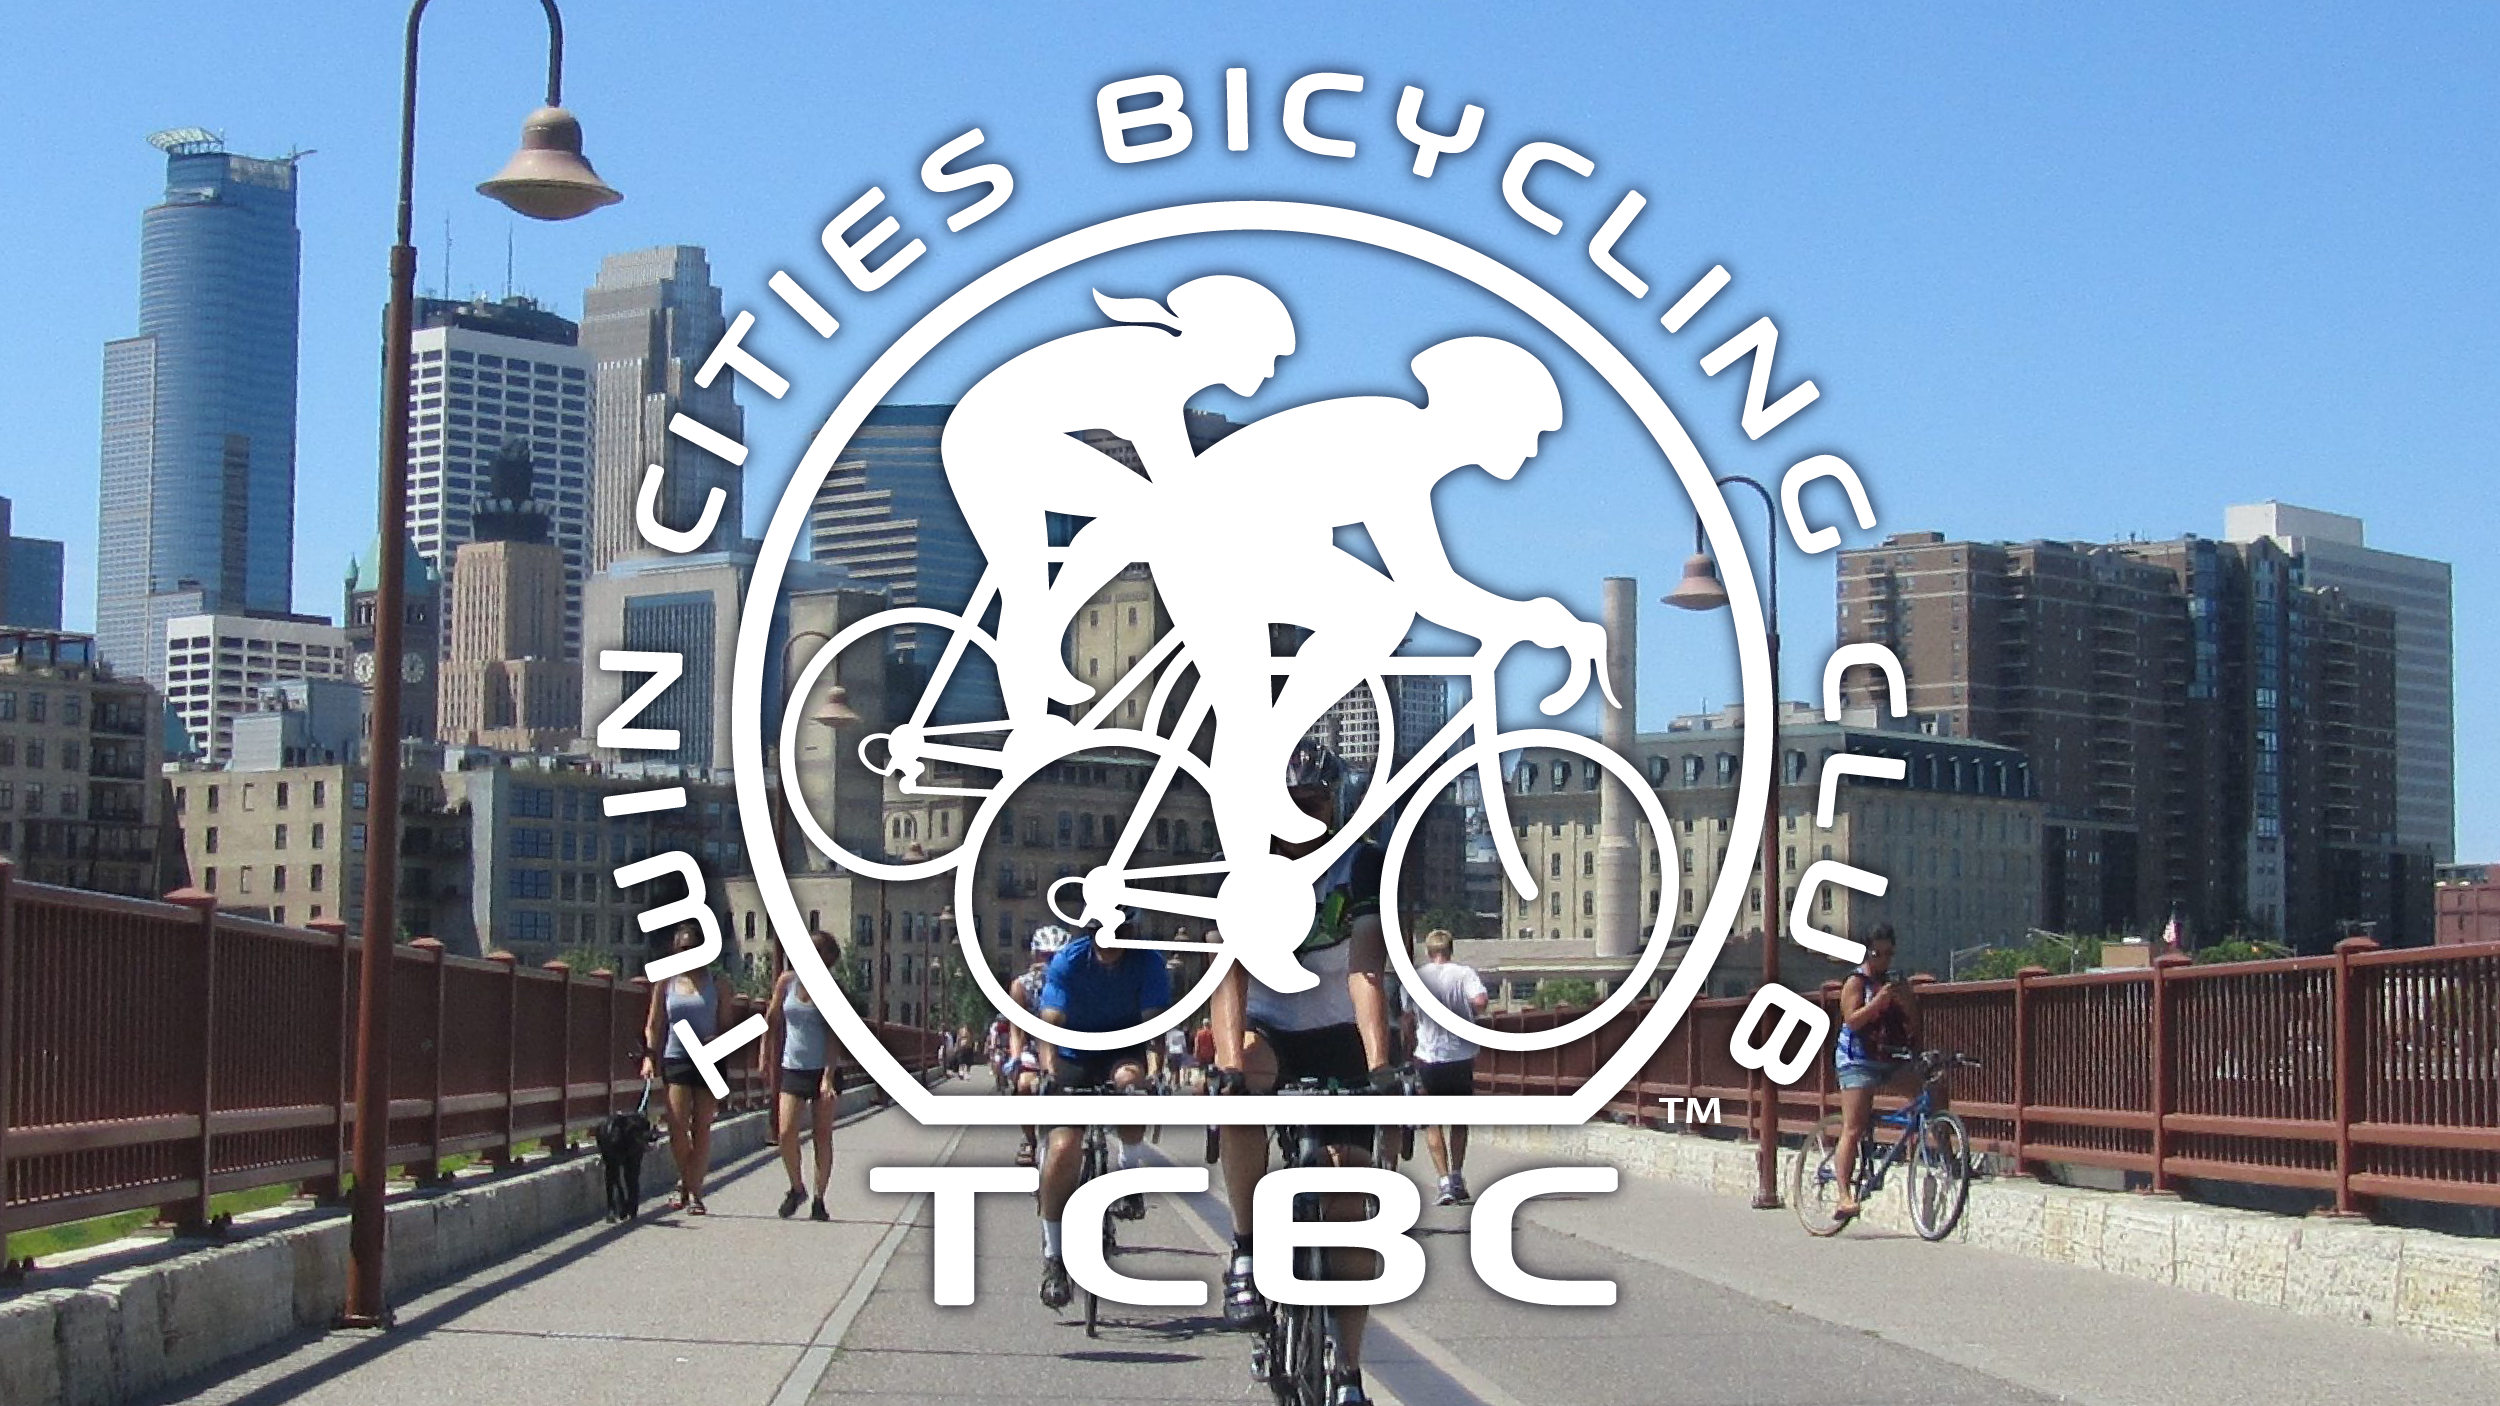 Twin Cities Bicycling Club (TCBC)